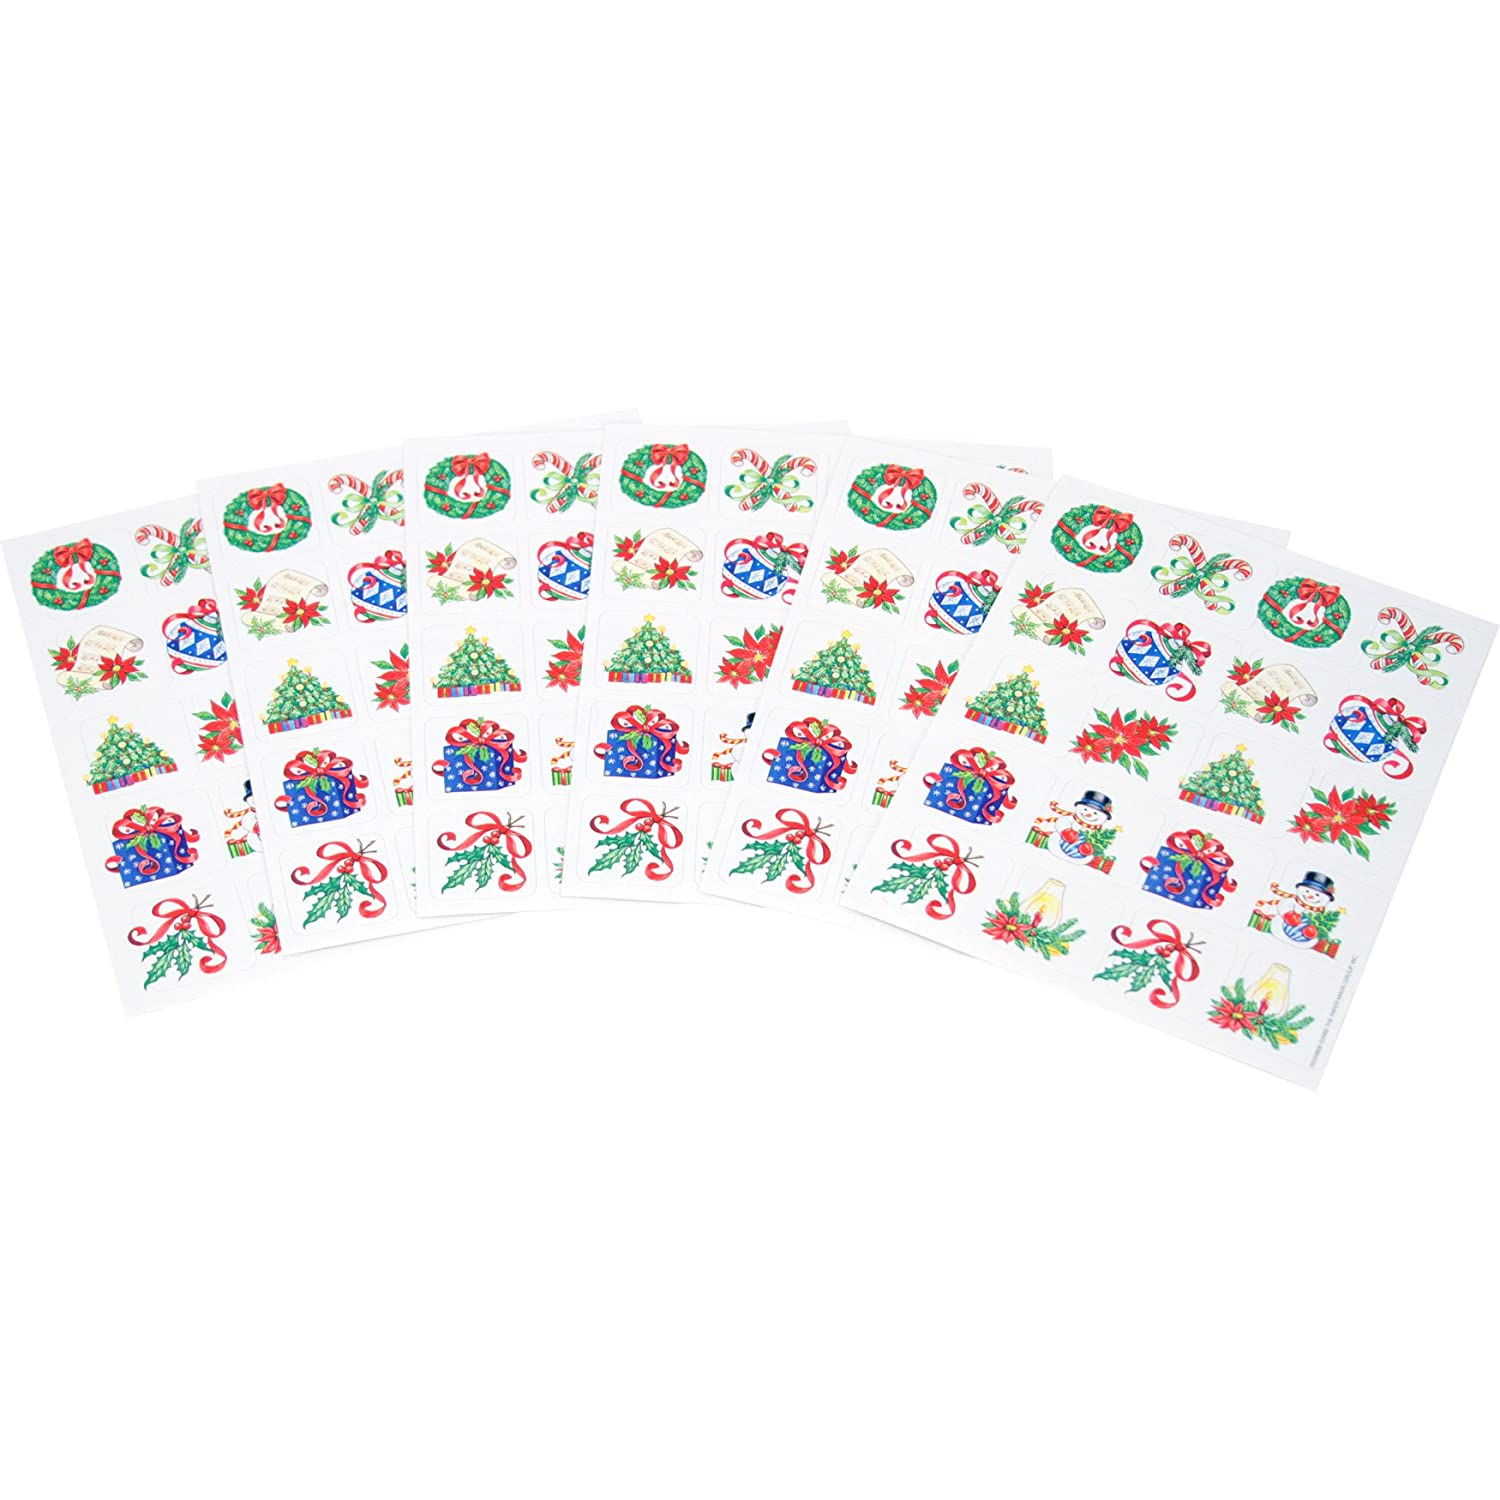 Paper Magic 655980 Eureka Christmas Stickers Paper Magic Group Inc.